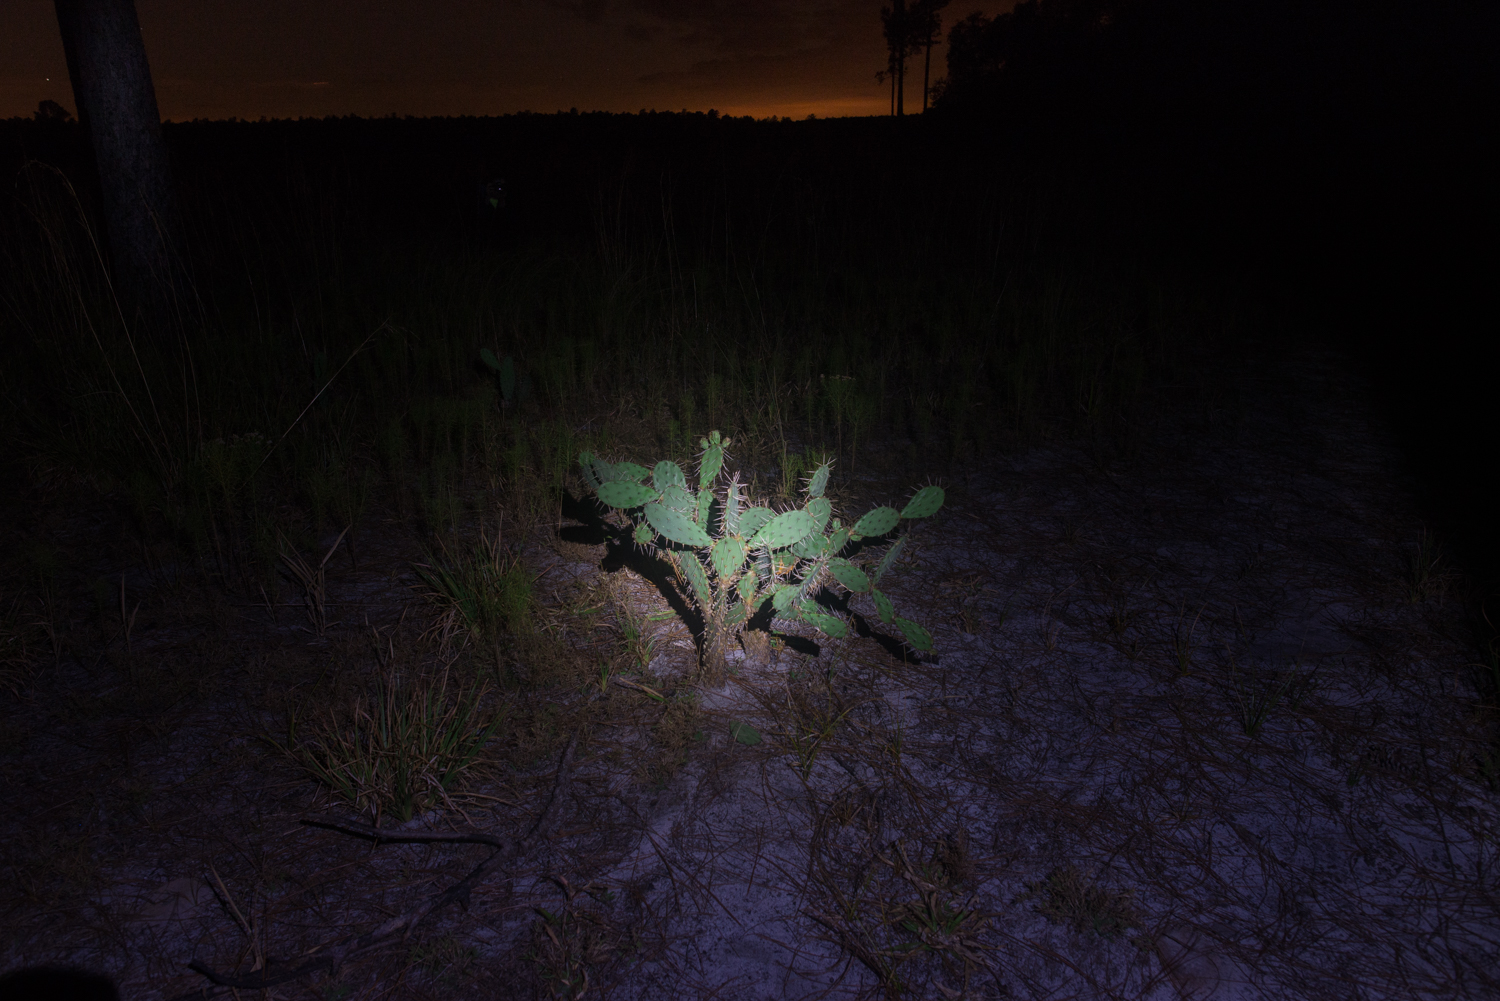 I took this image at Hopkins Prairie in 2016 during our first camping trip together. I remember discussing how difficult it is to take a nice photo of a prickly pear cactus.